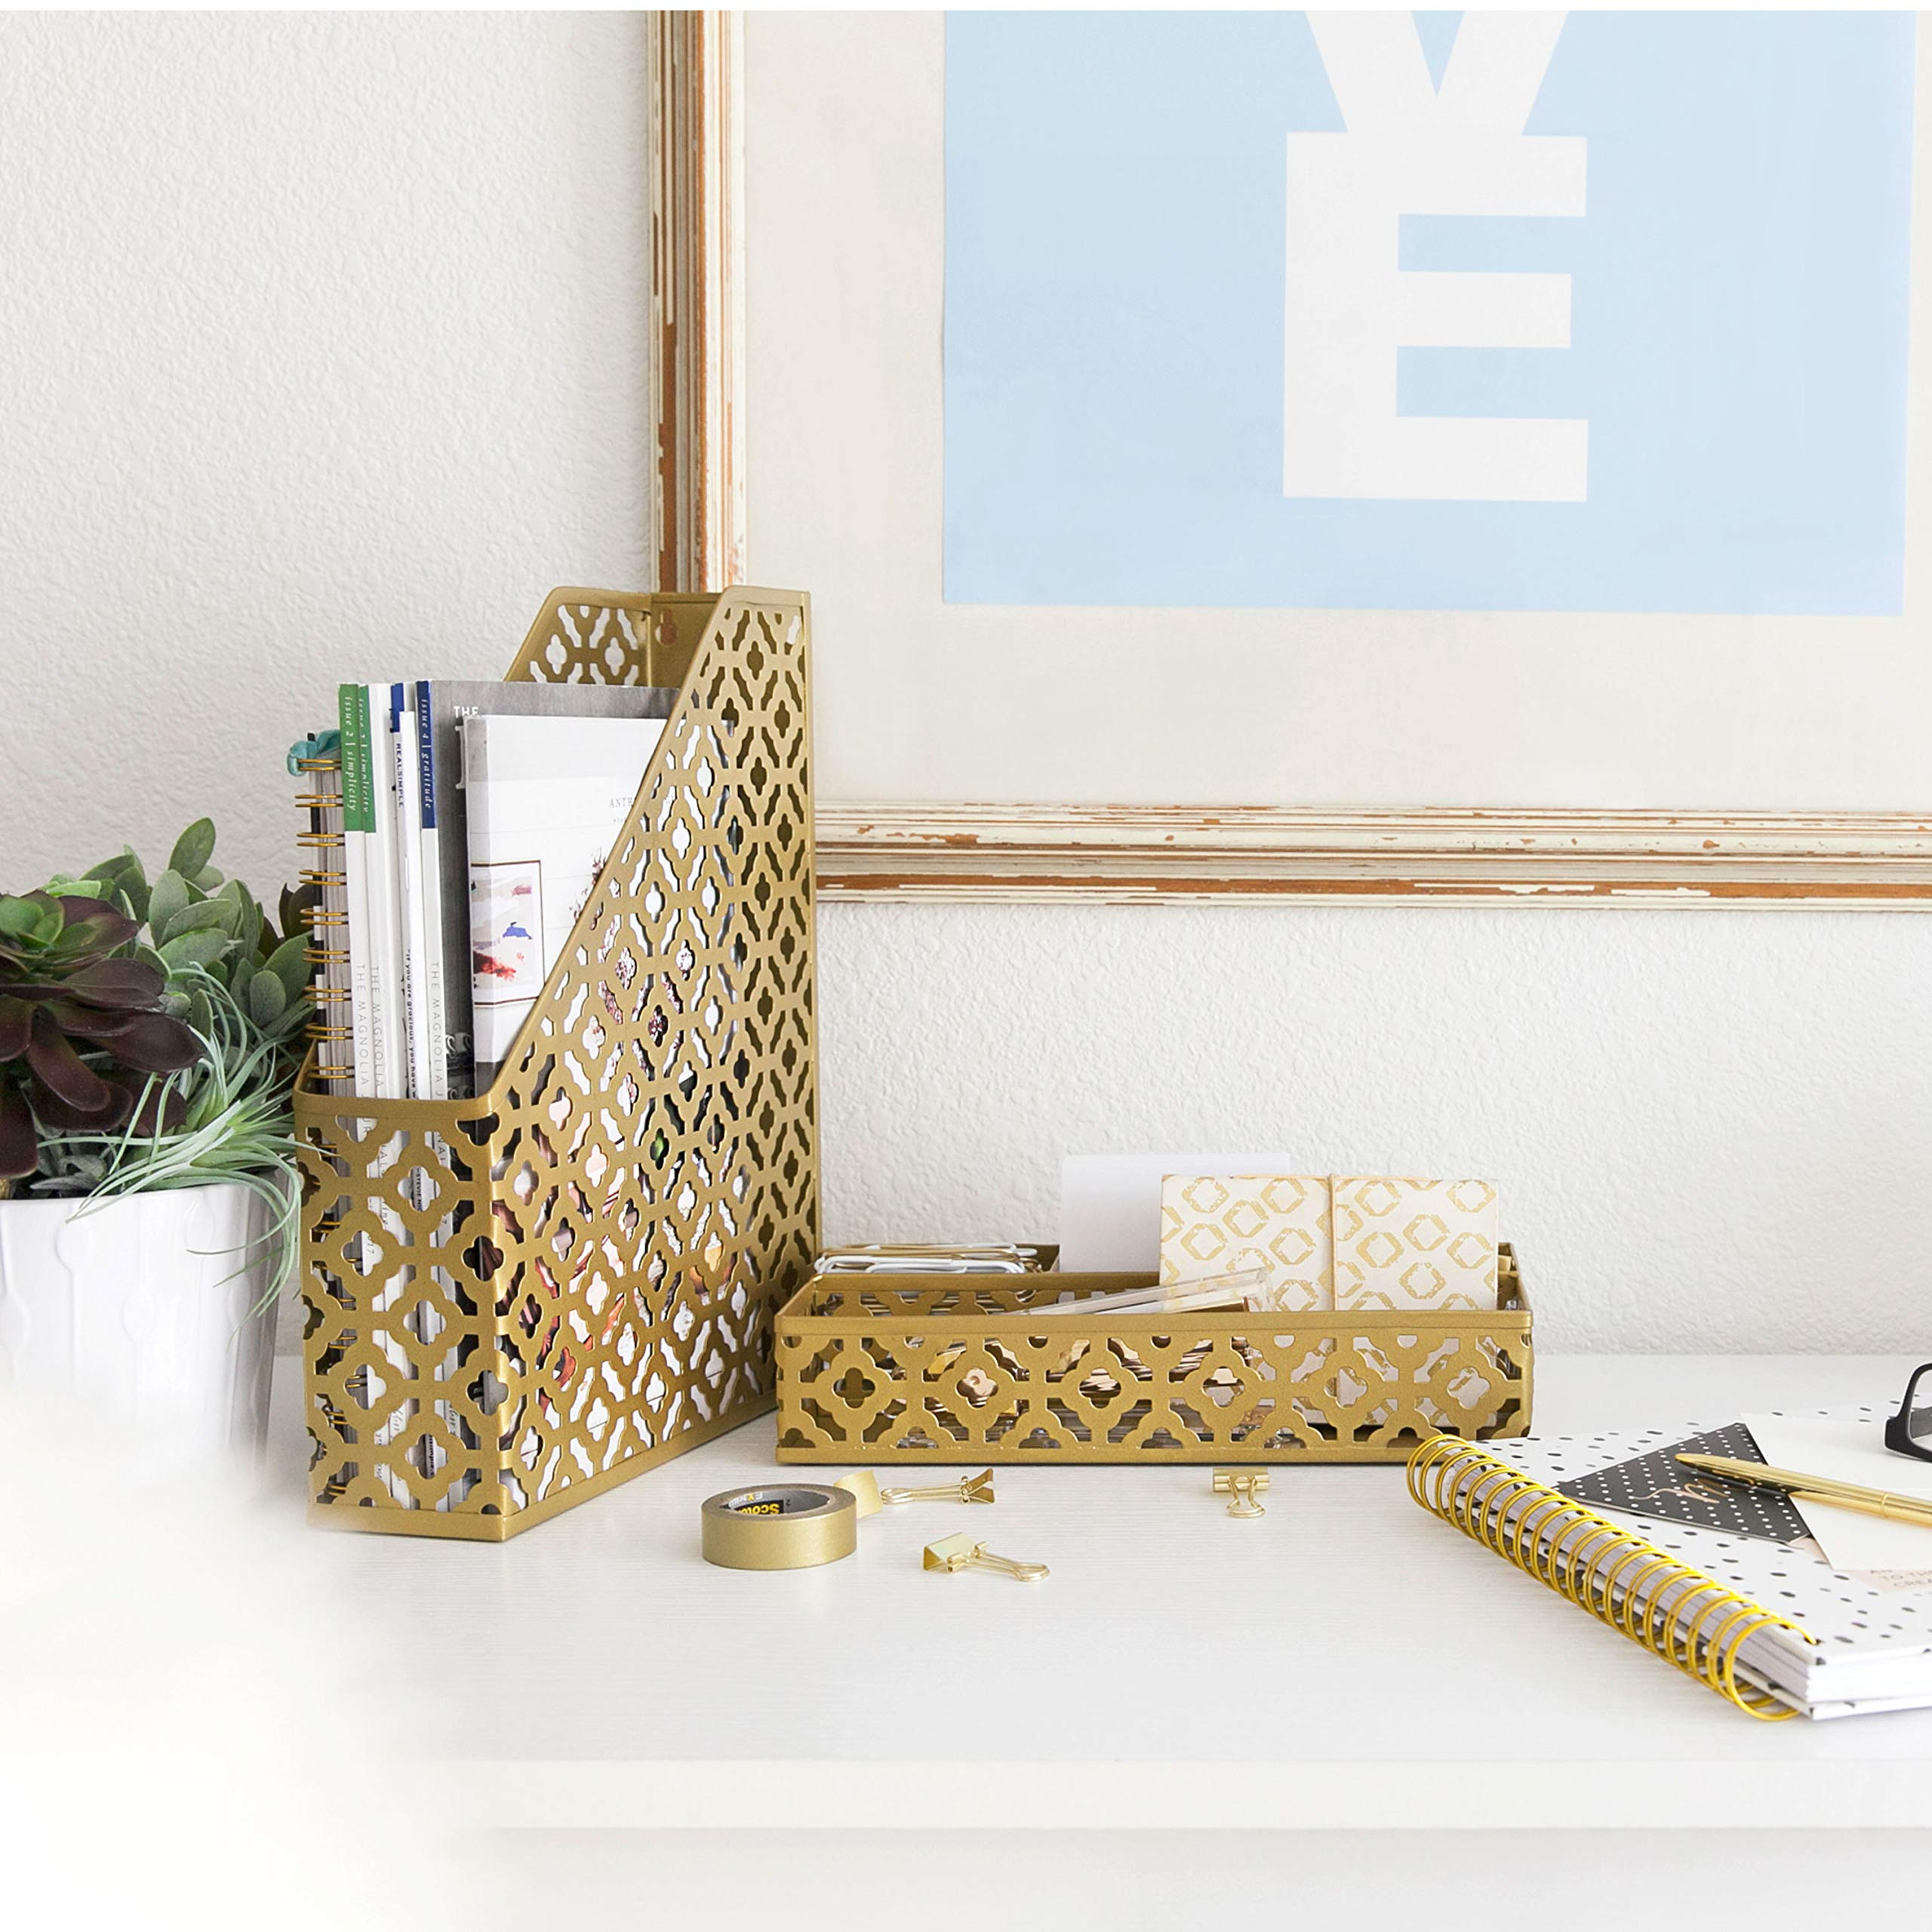 Blu Monaco Gold Desk Organizer for Women - 3 Piece Desk Accessories Set - Pen Cup, Magazine-File-Mail Holder, and Accessories Tray - Antique Gold Brass Finish Office Supplies Stationery Decor by Blu Monaco (Image #1)